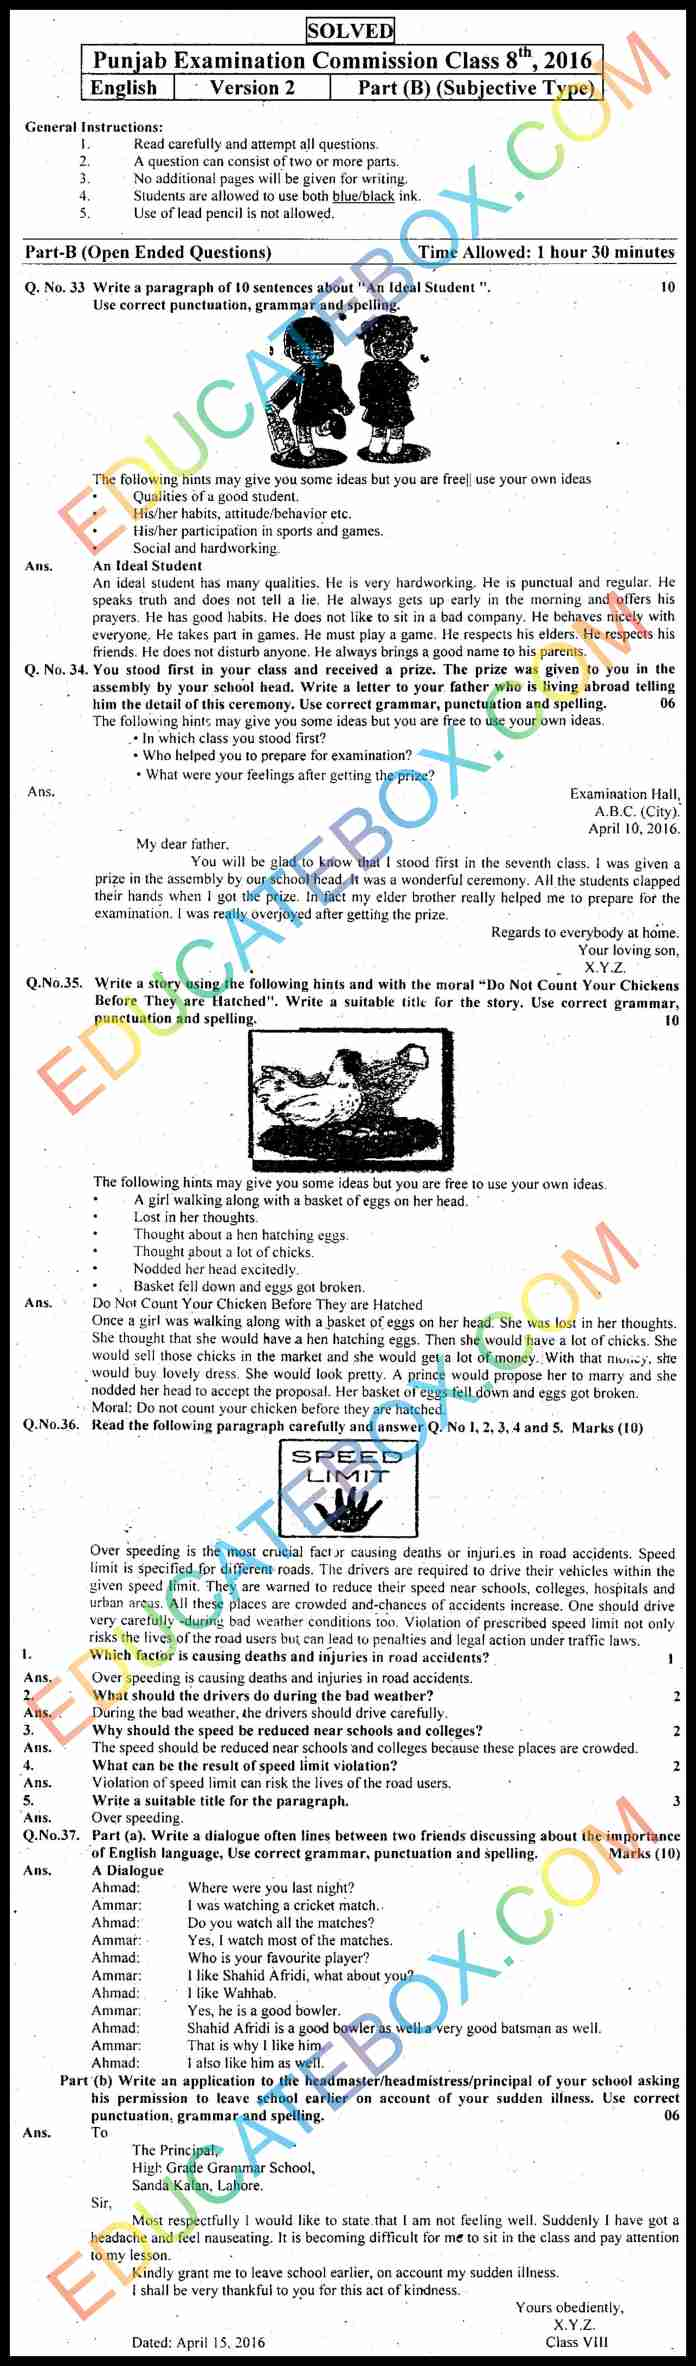 Past Paper 8th Class English 2016 Solved Paper Punjab Board (PEC) Subjective Type Version 2